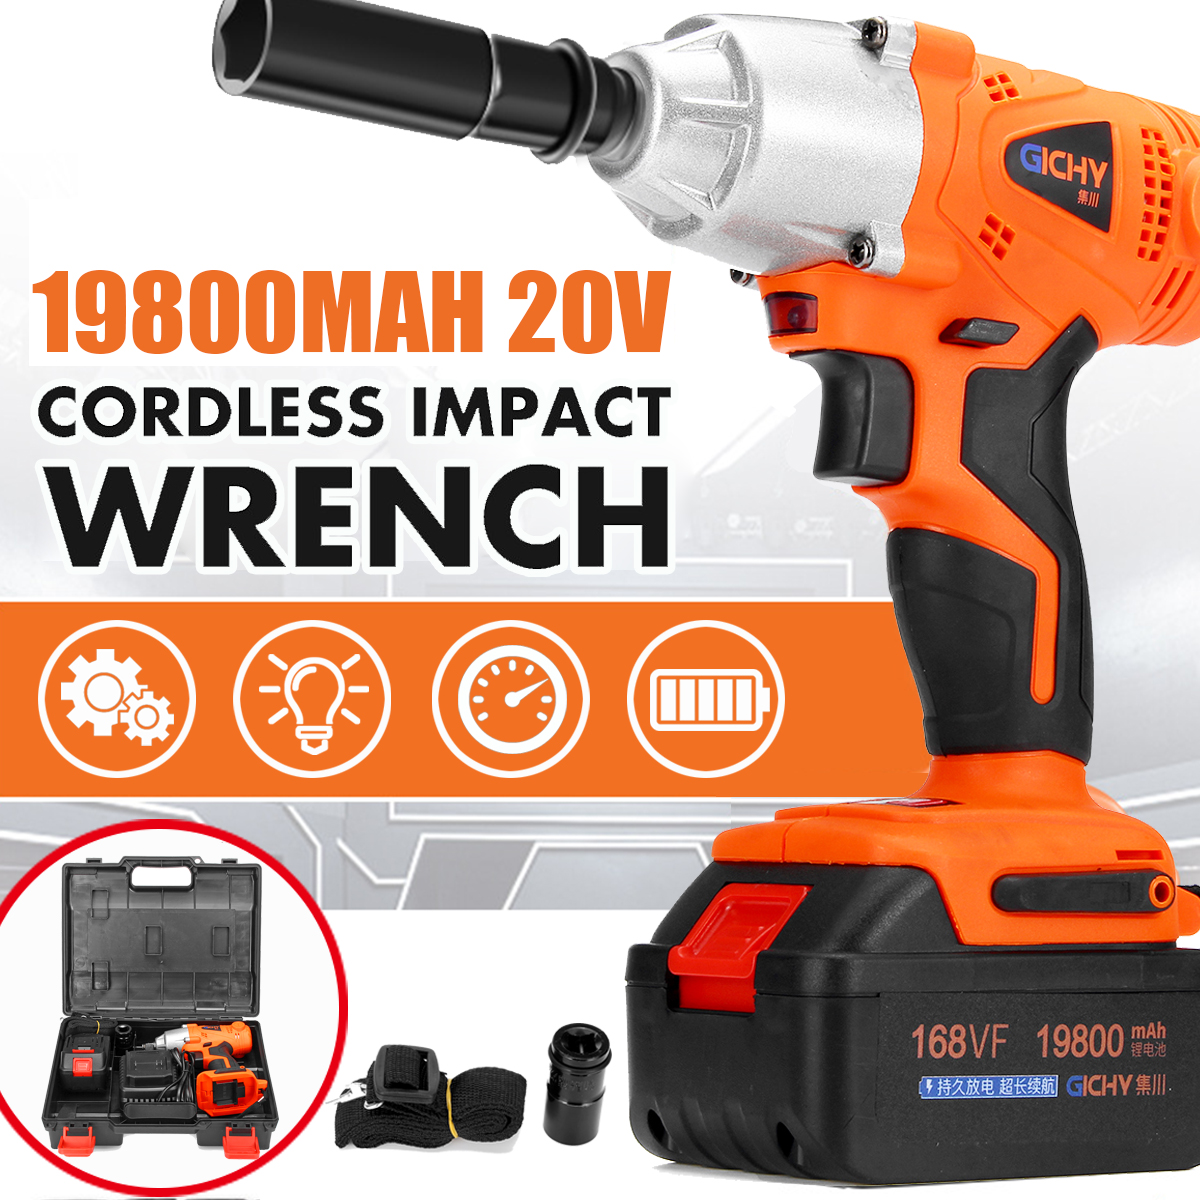 168VF Brushless Cordless Electric Wrench Impact Socket Wrench 19800mah Battery Rechargeable Hand Drill Installation Power Tools168VF Brushless Cordless Electric Wrench Impact Socket Wrench 19800mah Battery Rechargeable Hand Drill Installation Power Tools